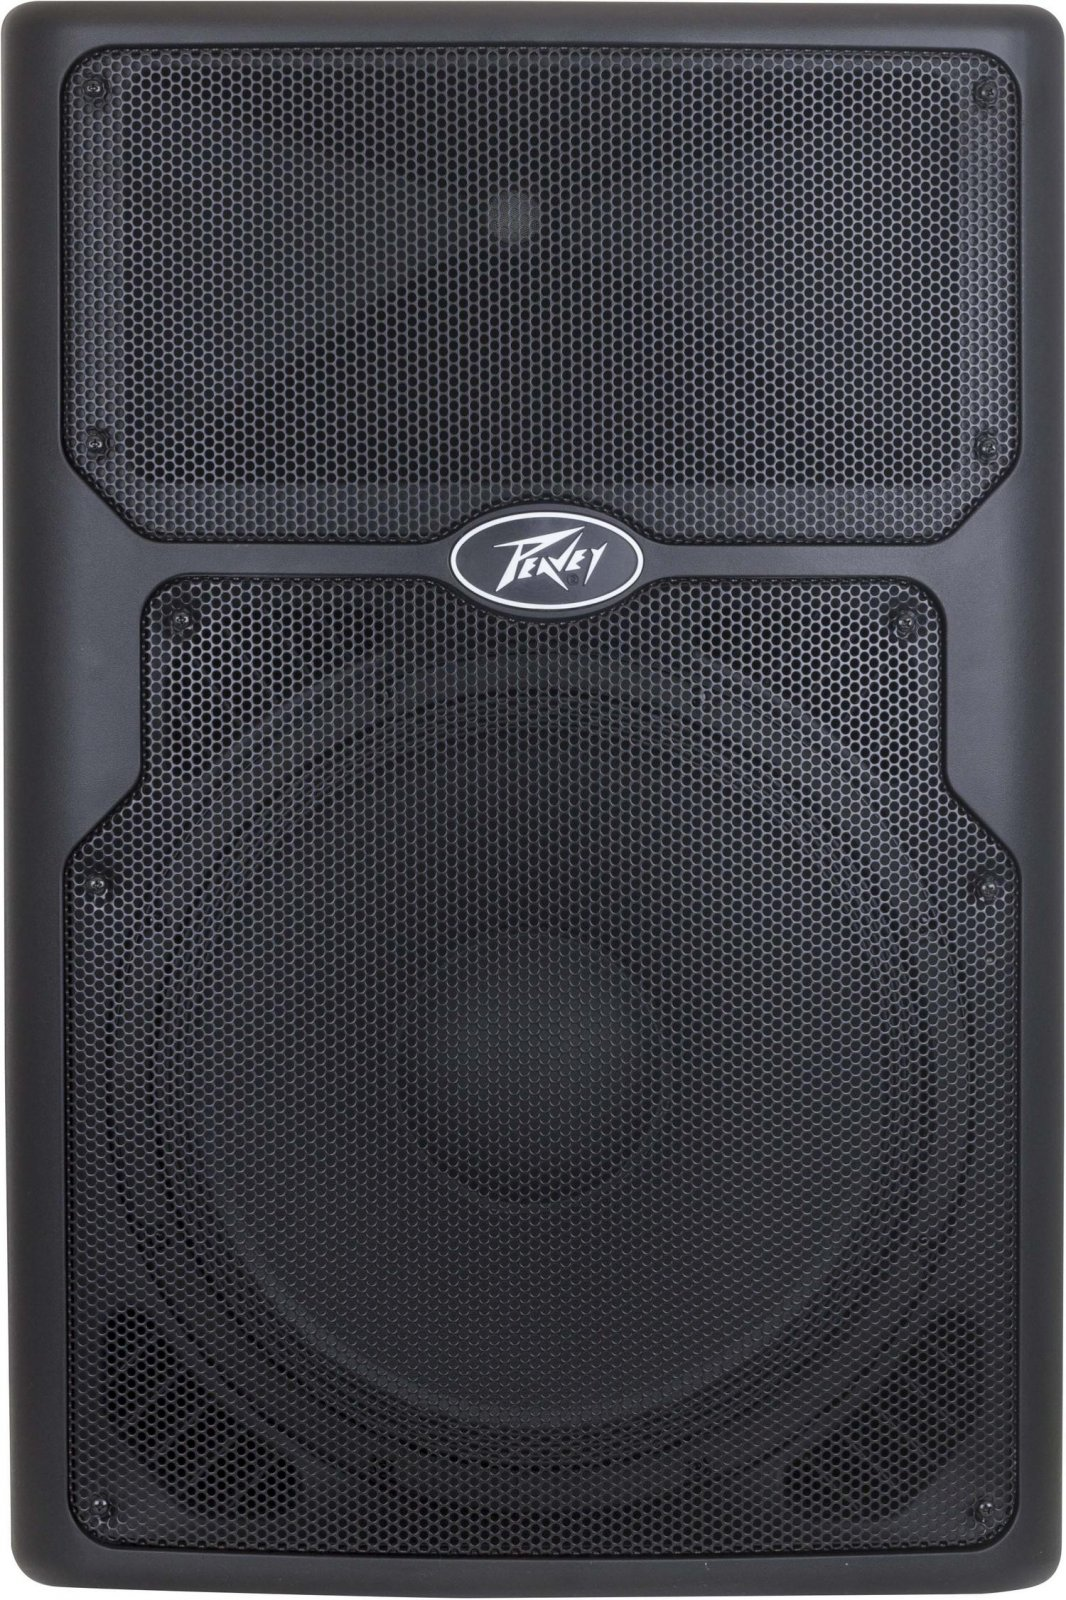 Peavey PVXp 15 DSP Powered Speaker